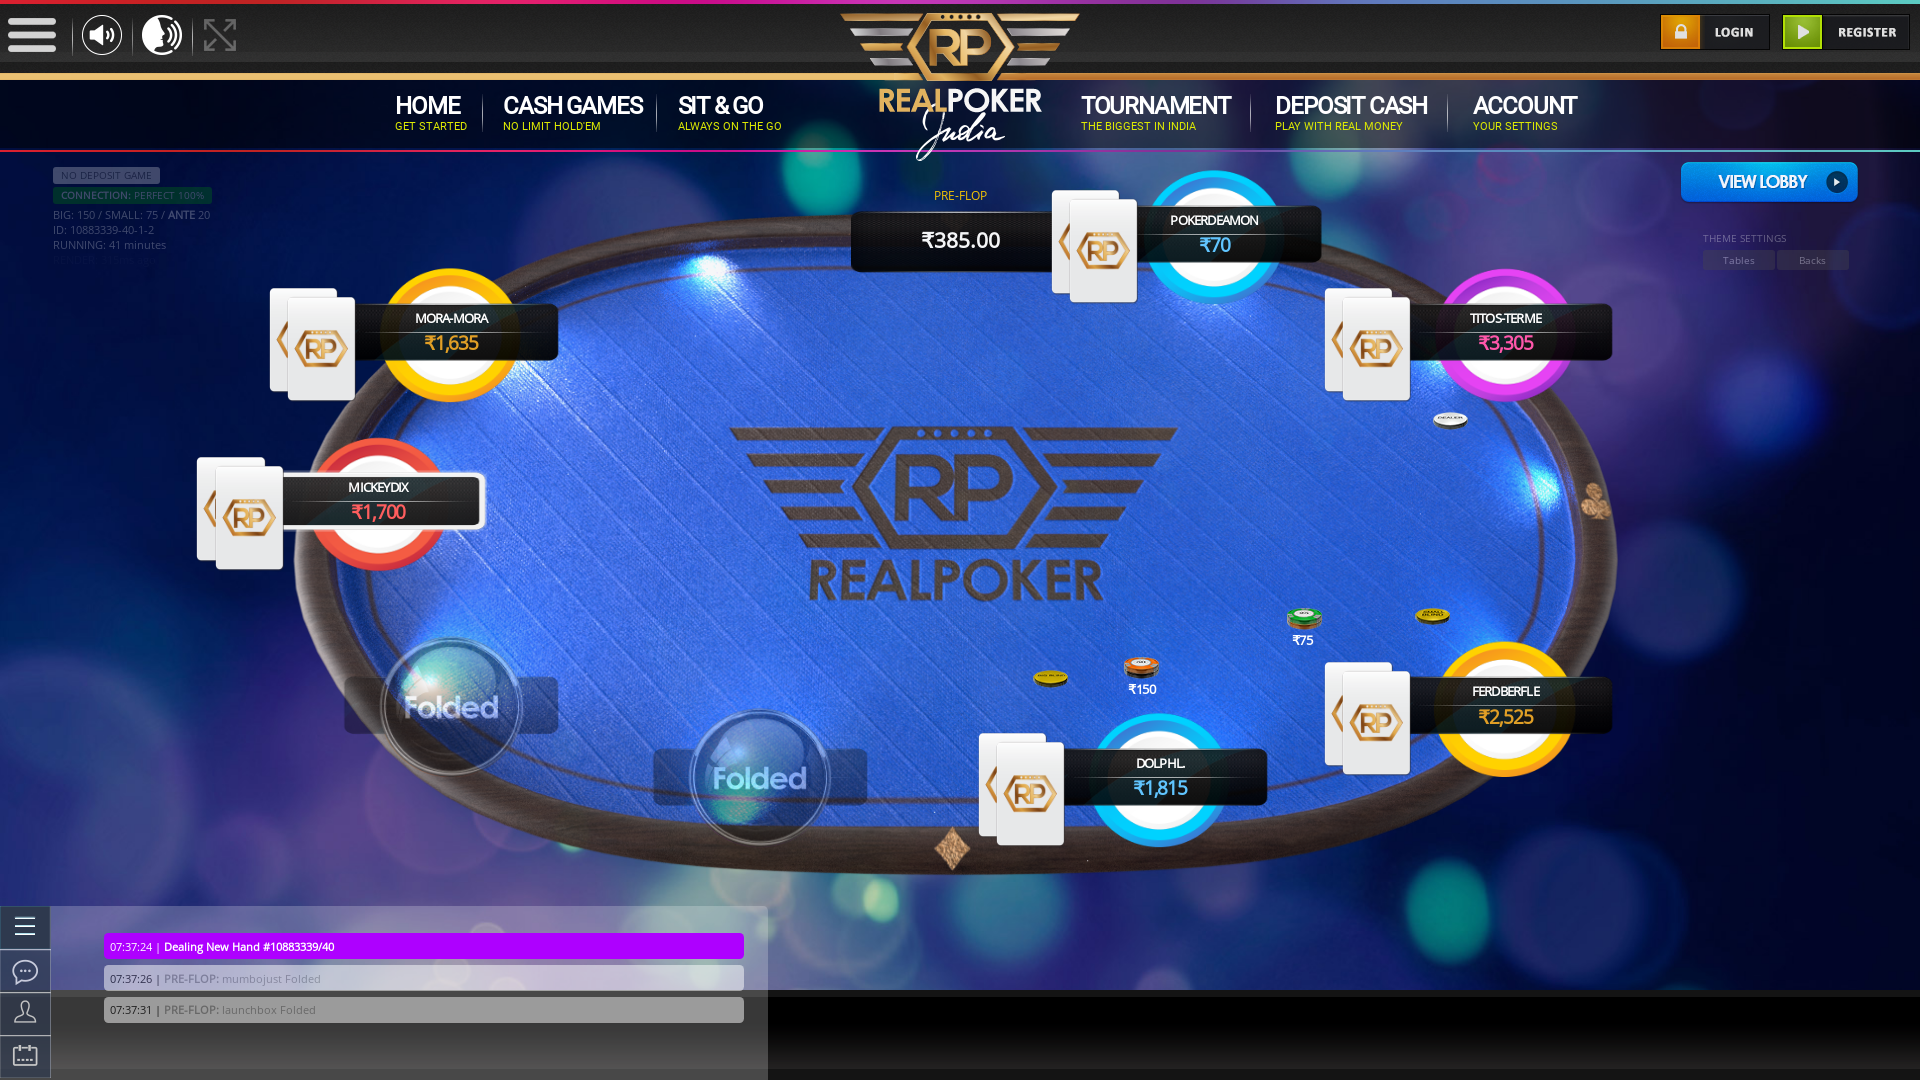 Online poker on a 10 player table in the 41st minute match up